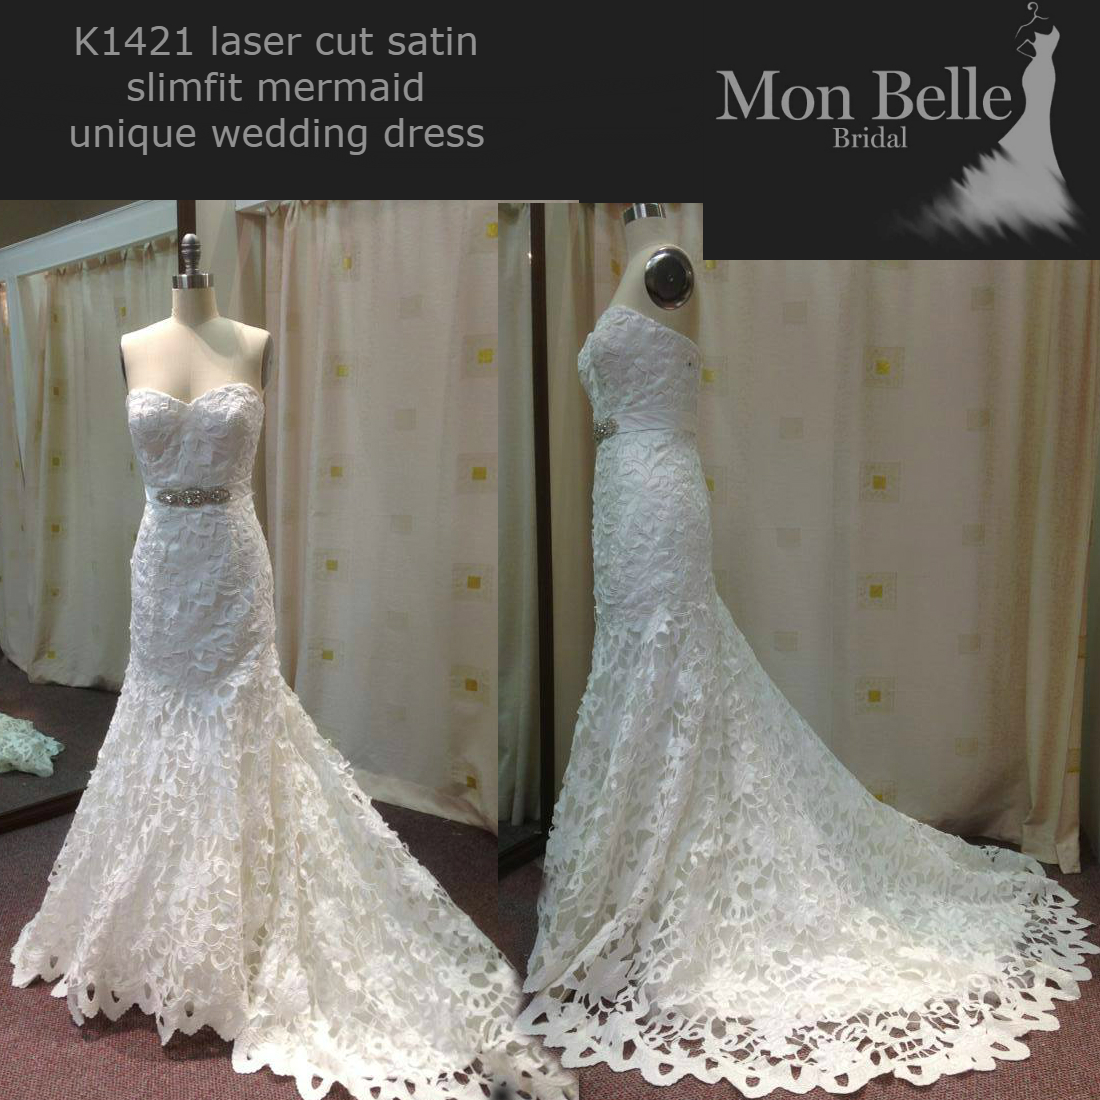 K1421 laser cut satin slimfit mermaid unique wedding dresses